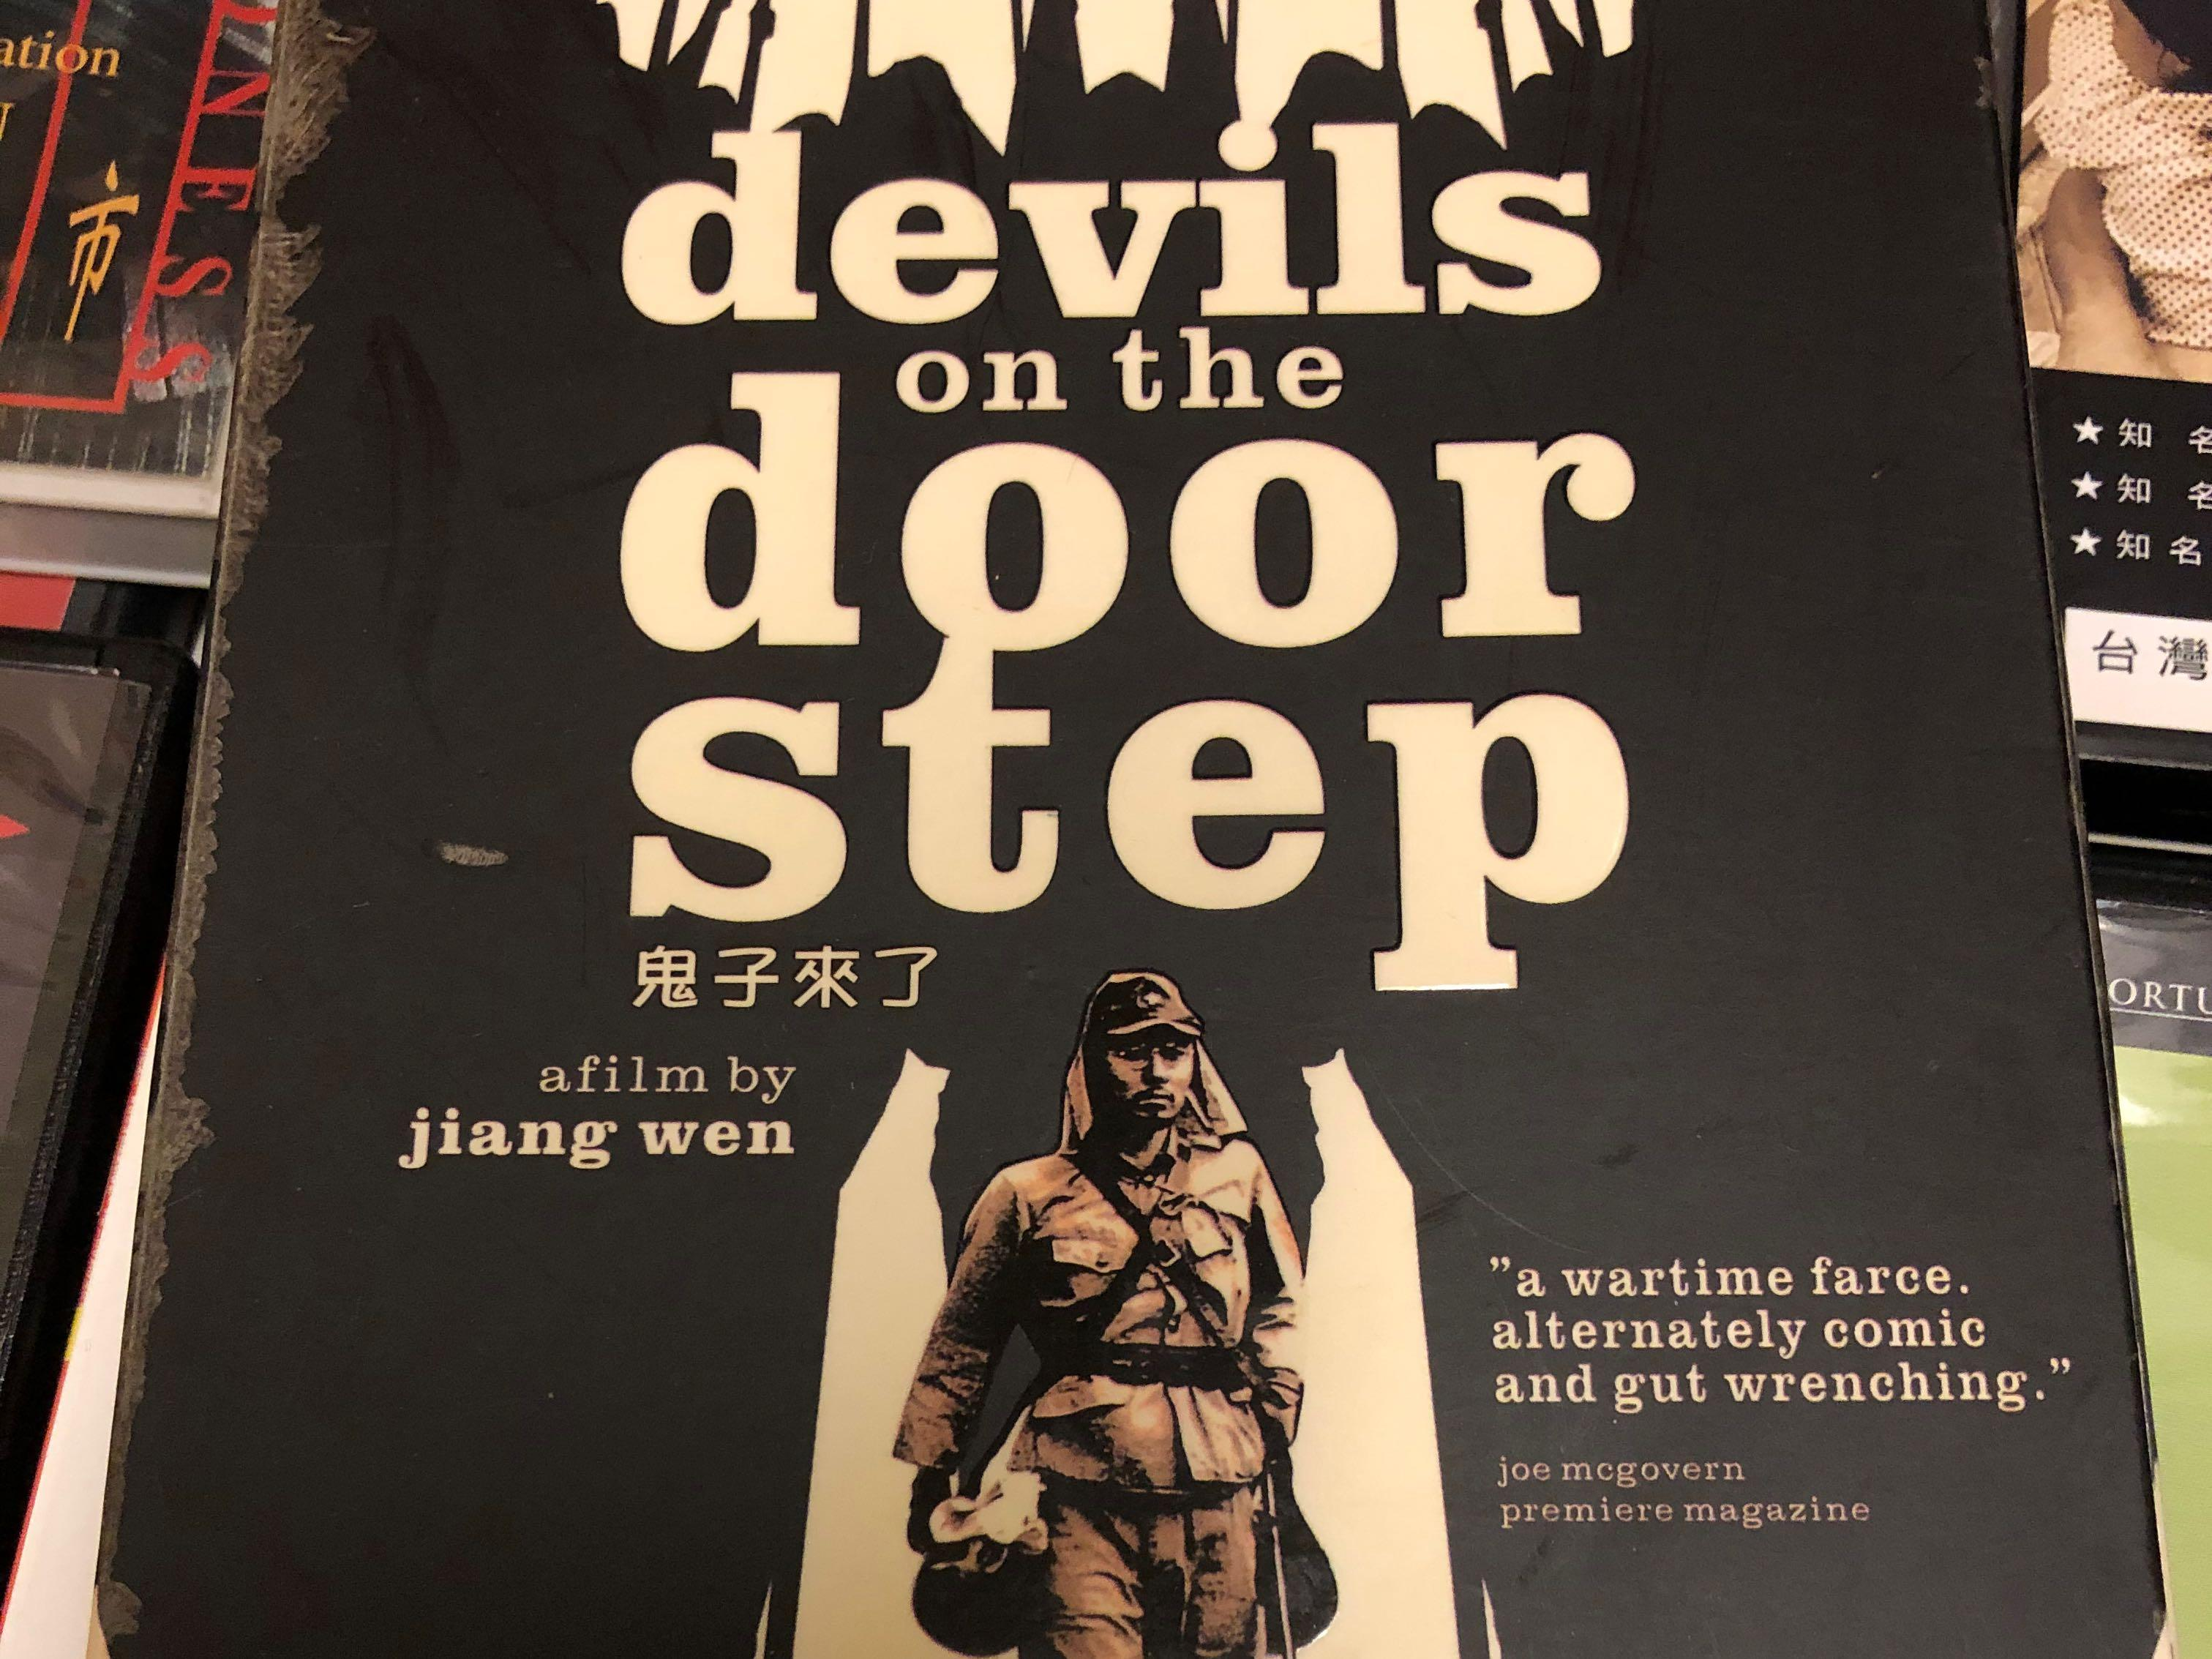 Devils On The Door Step 鬼子來了 姜文 中文DVD